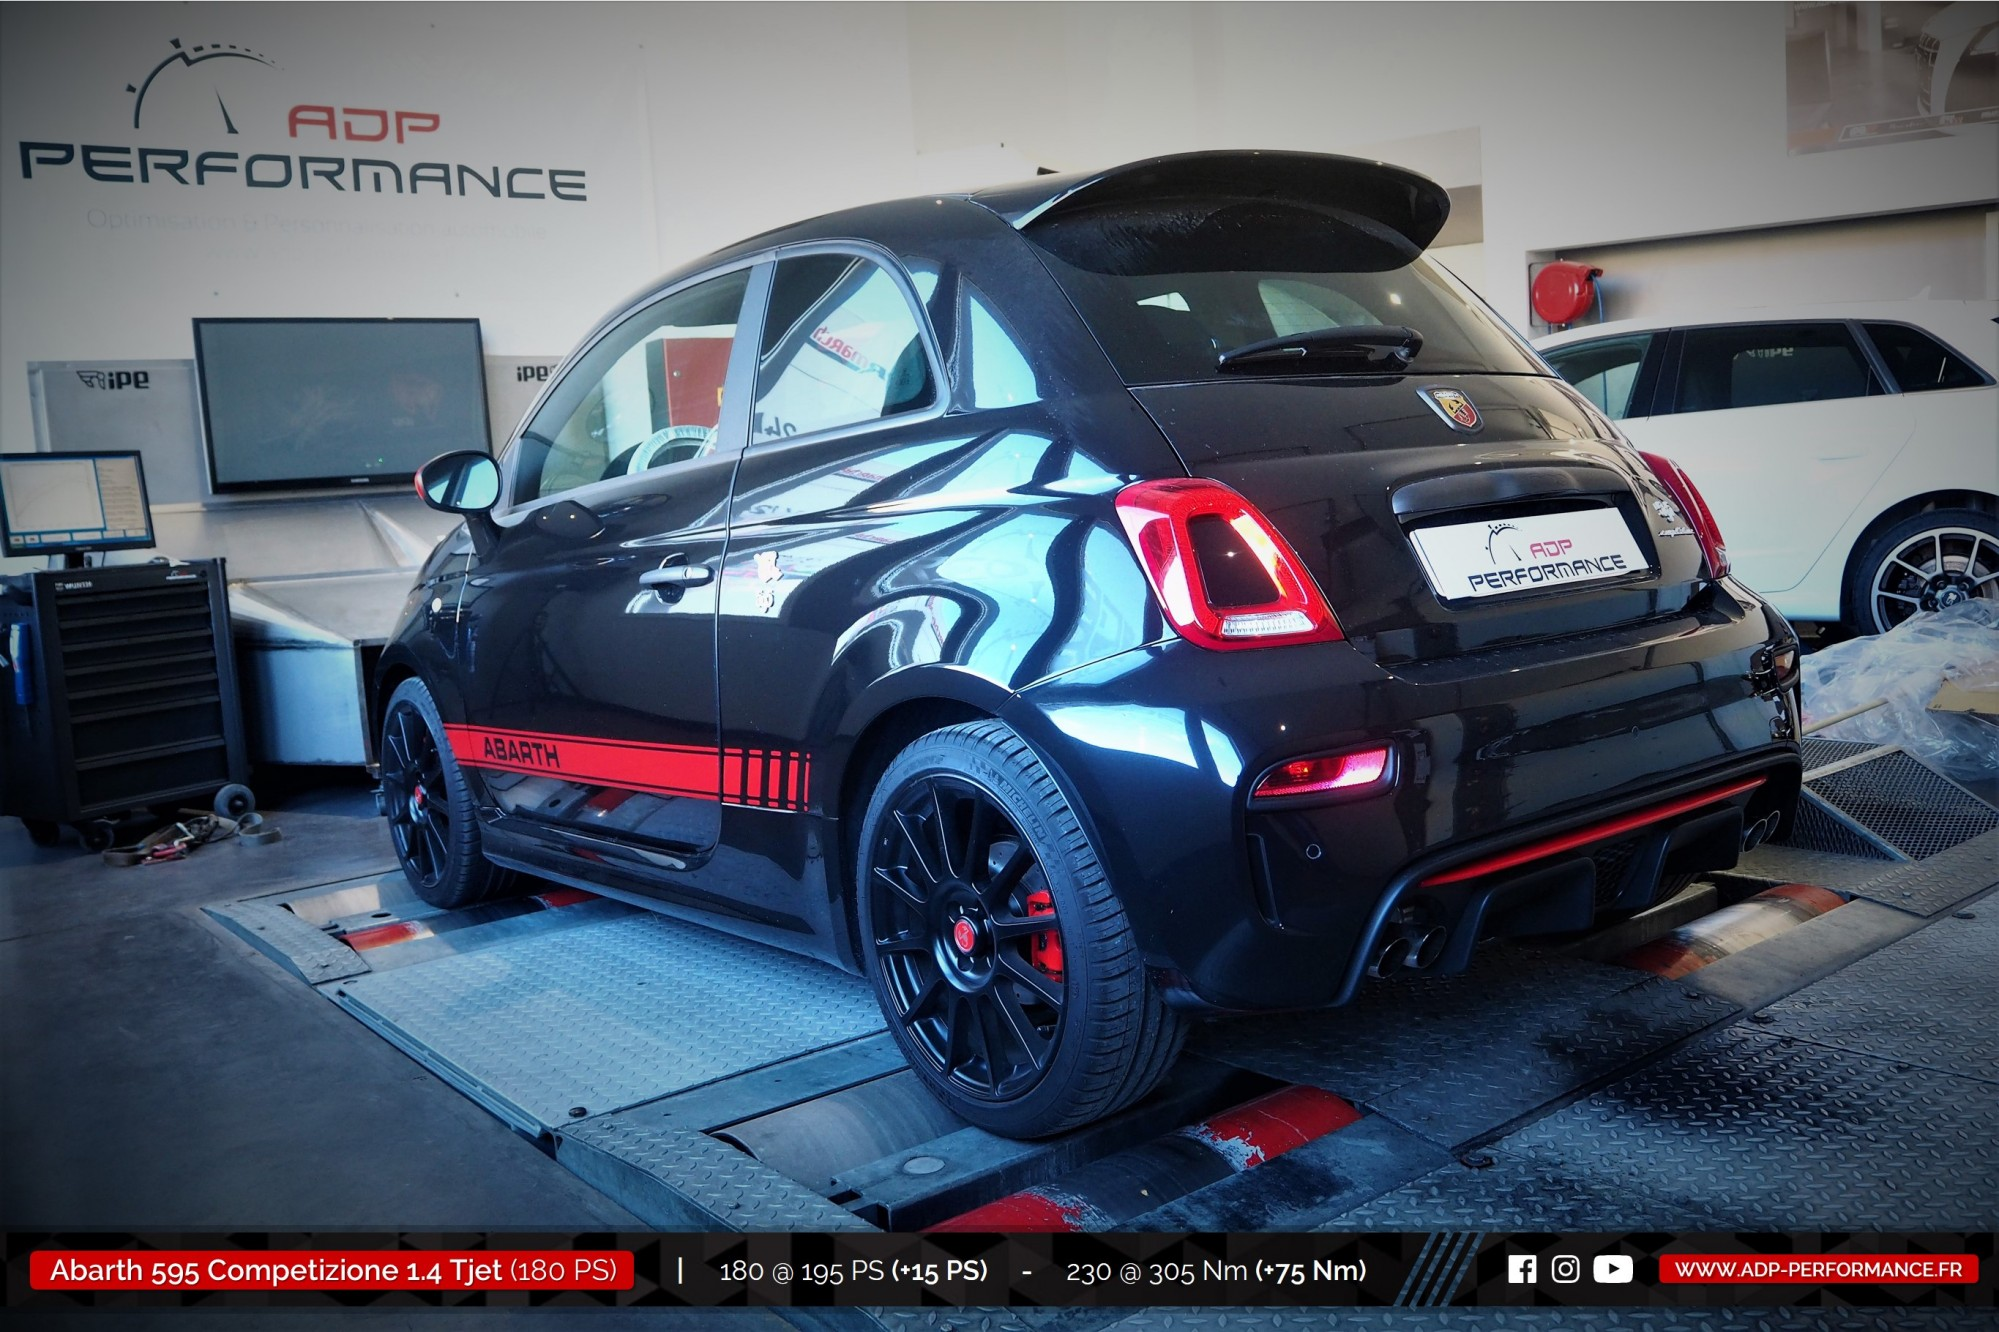 reprogrammation moteur fiat 500 abarth 595 competizione cavaillon realisations. Black Bedroom Furniture Sets. Home Design Ideas